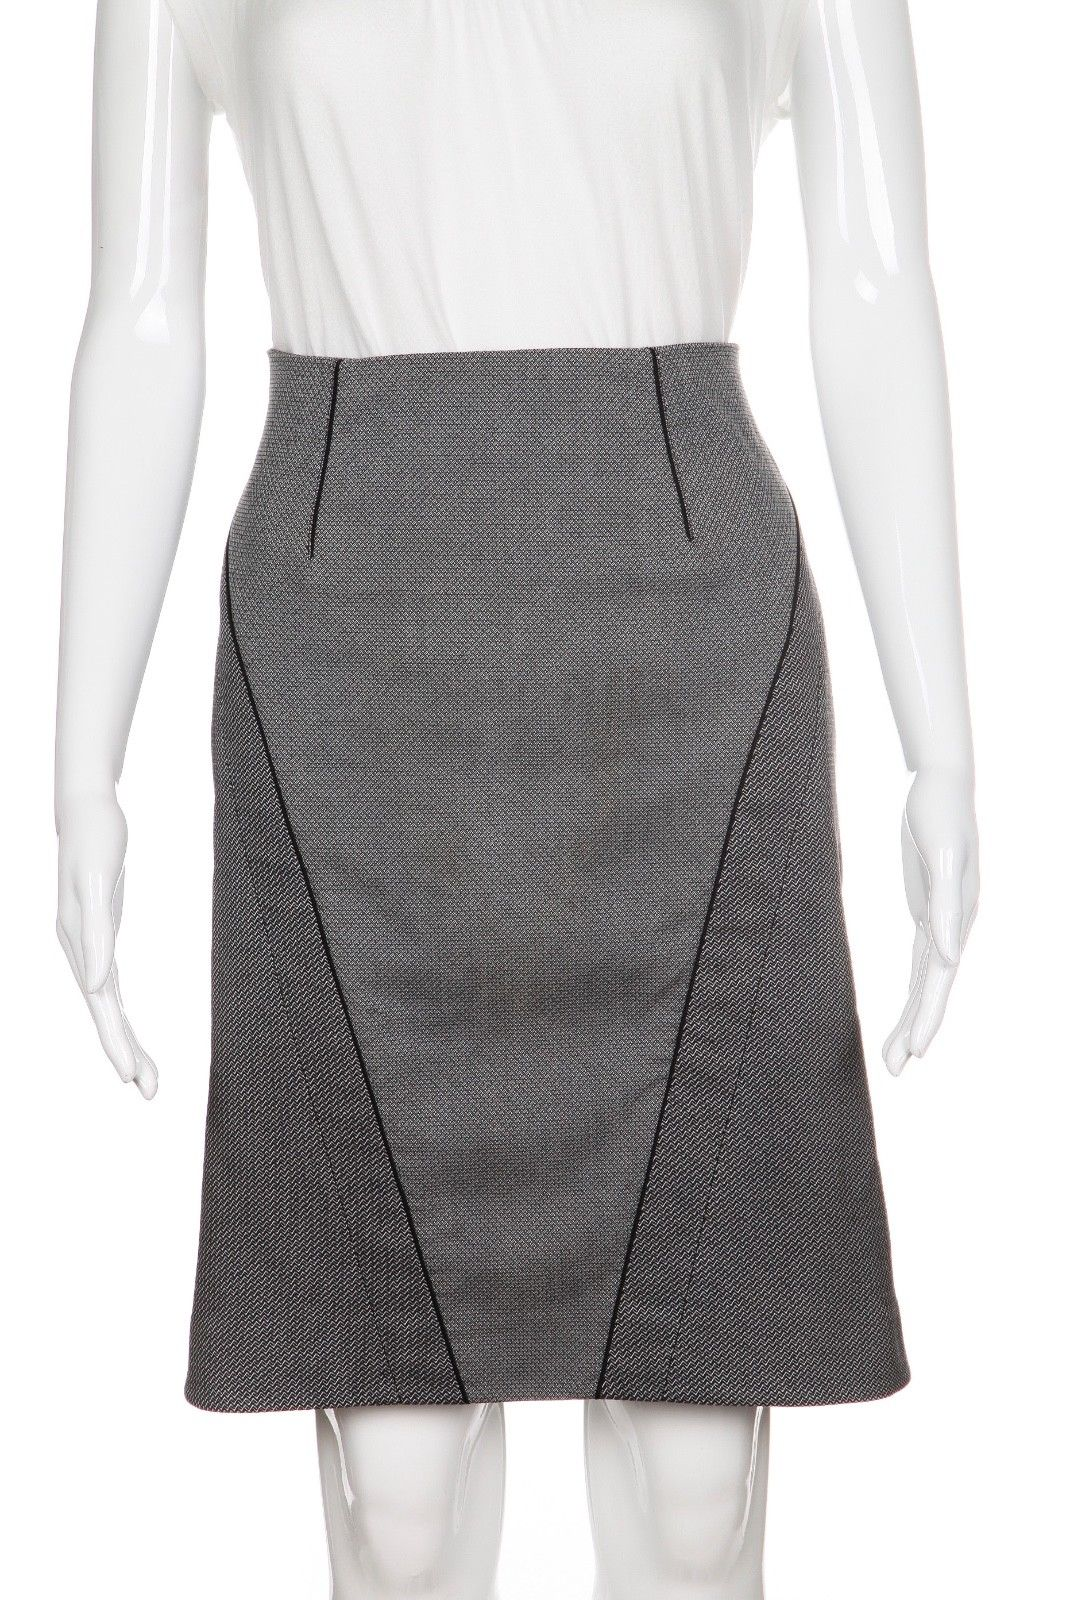 ZAC POSEN Gray Black Pencil Skirt Size 8